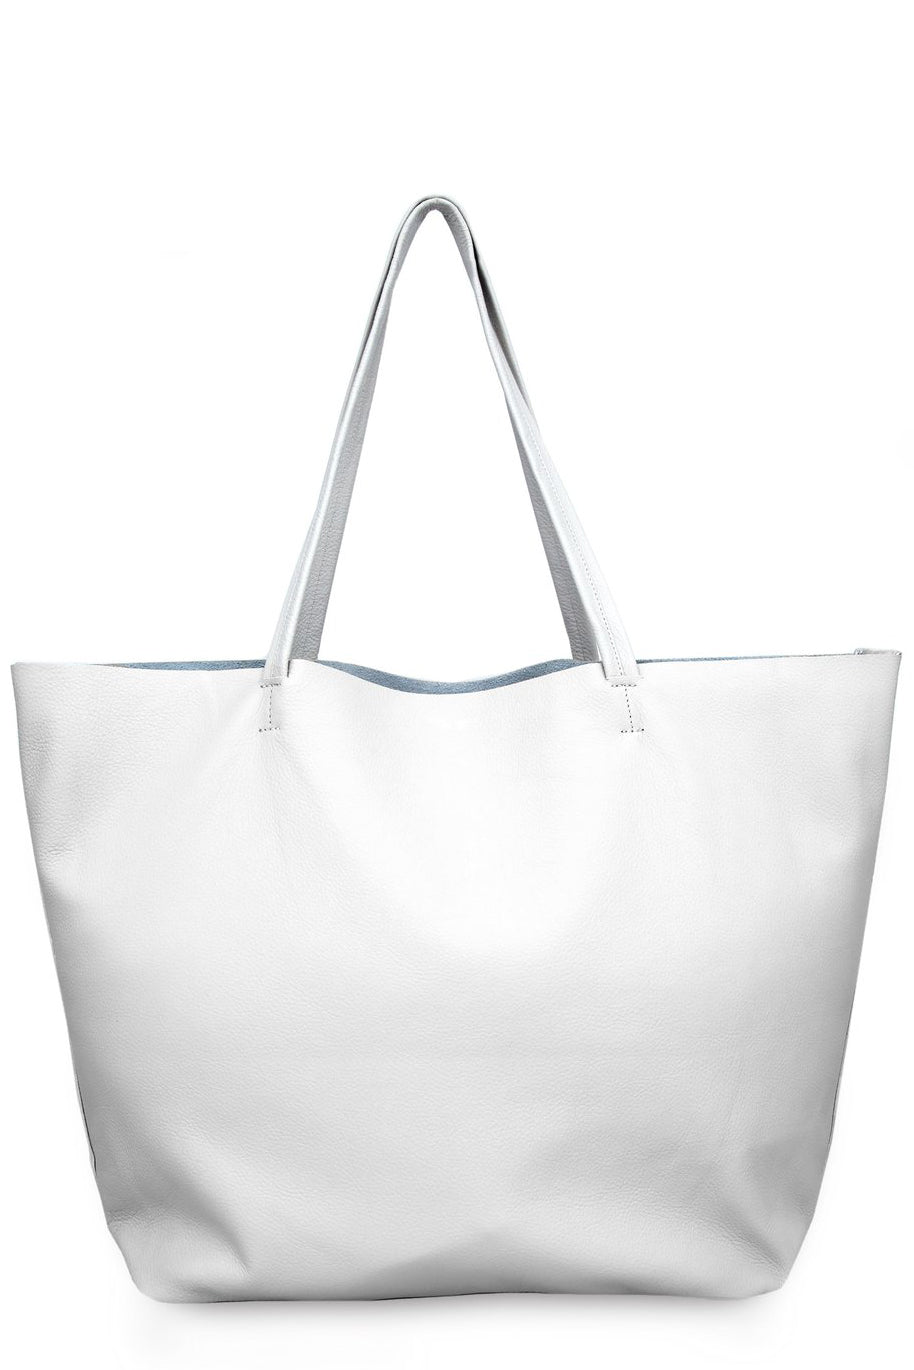 Clhei Sol Tote in Ivory